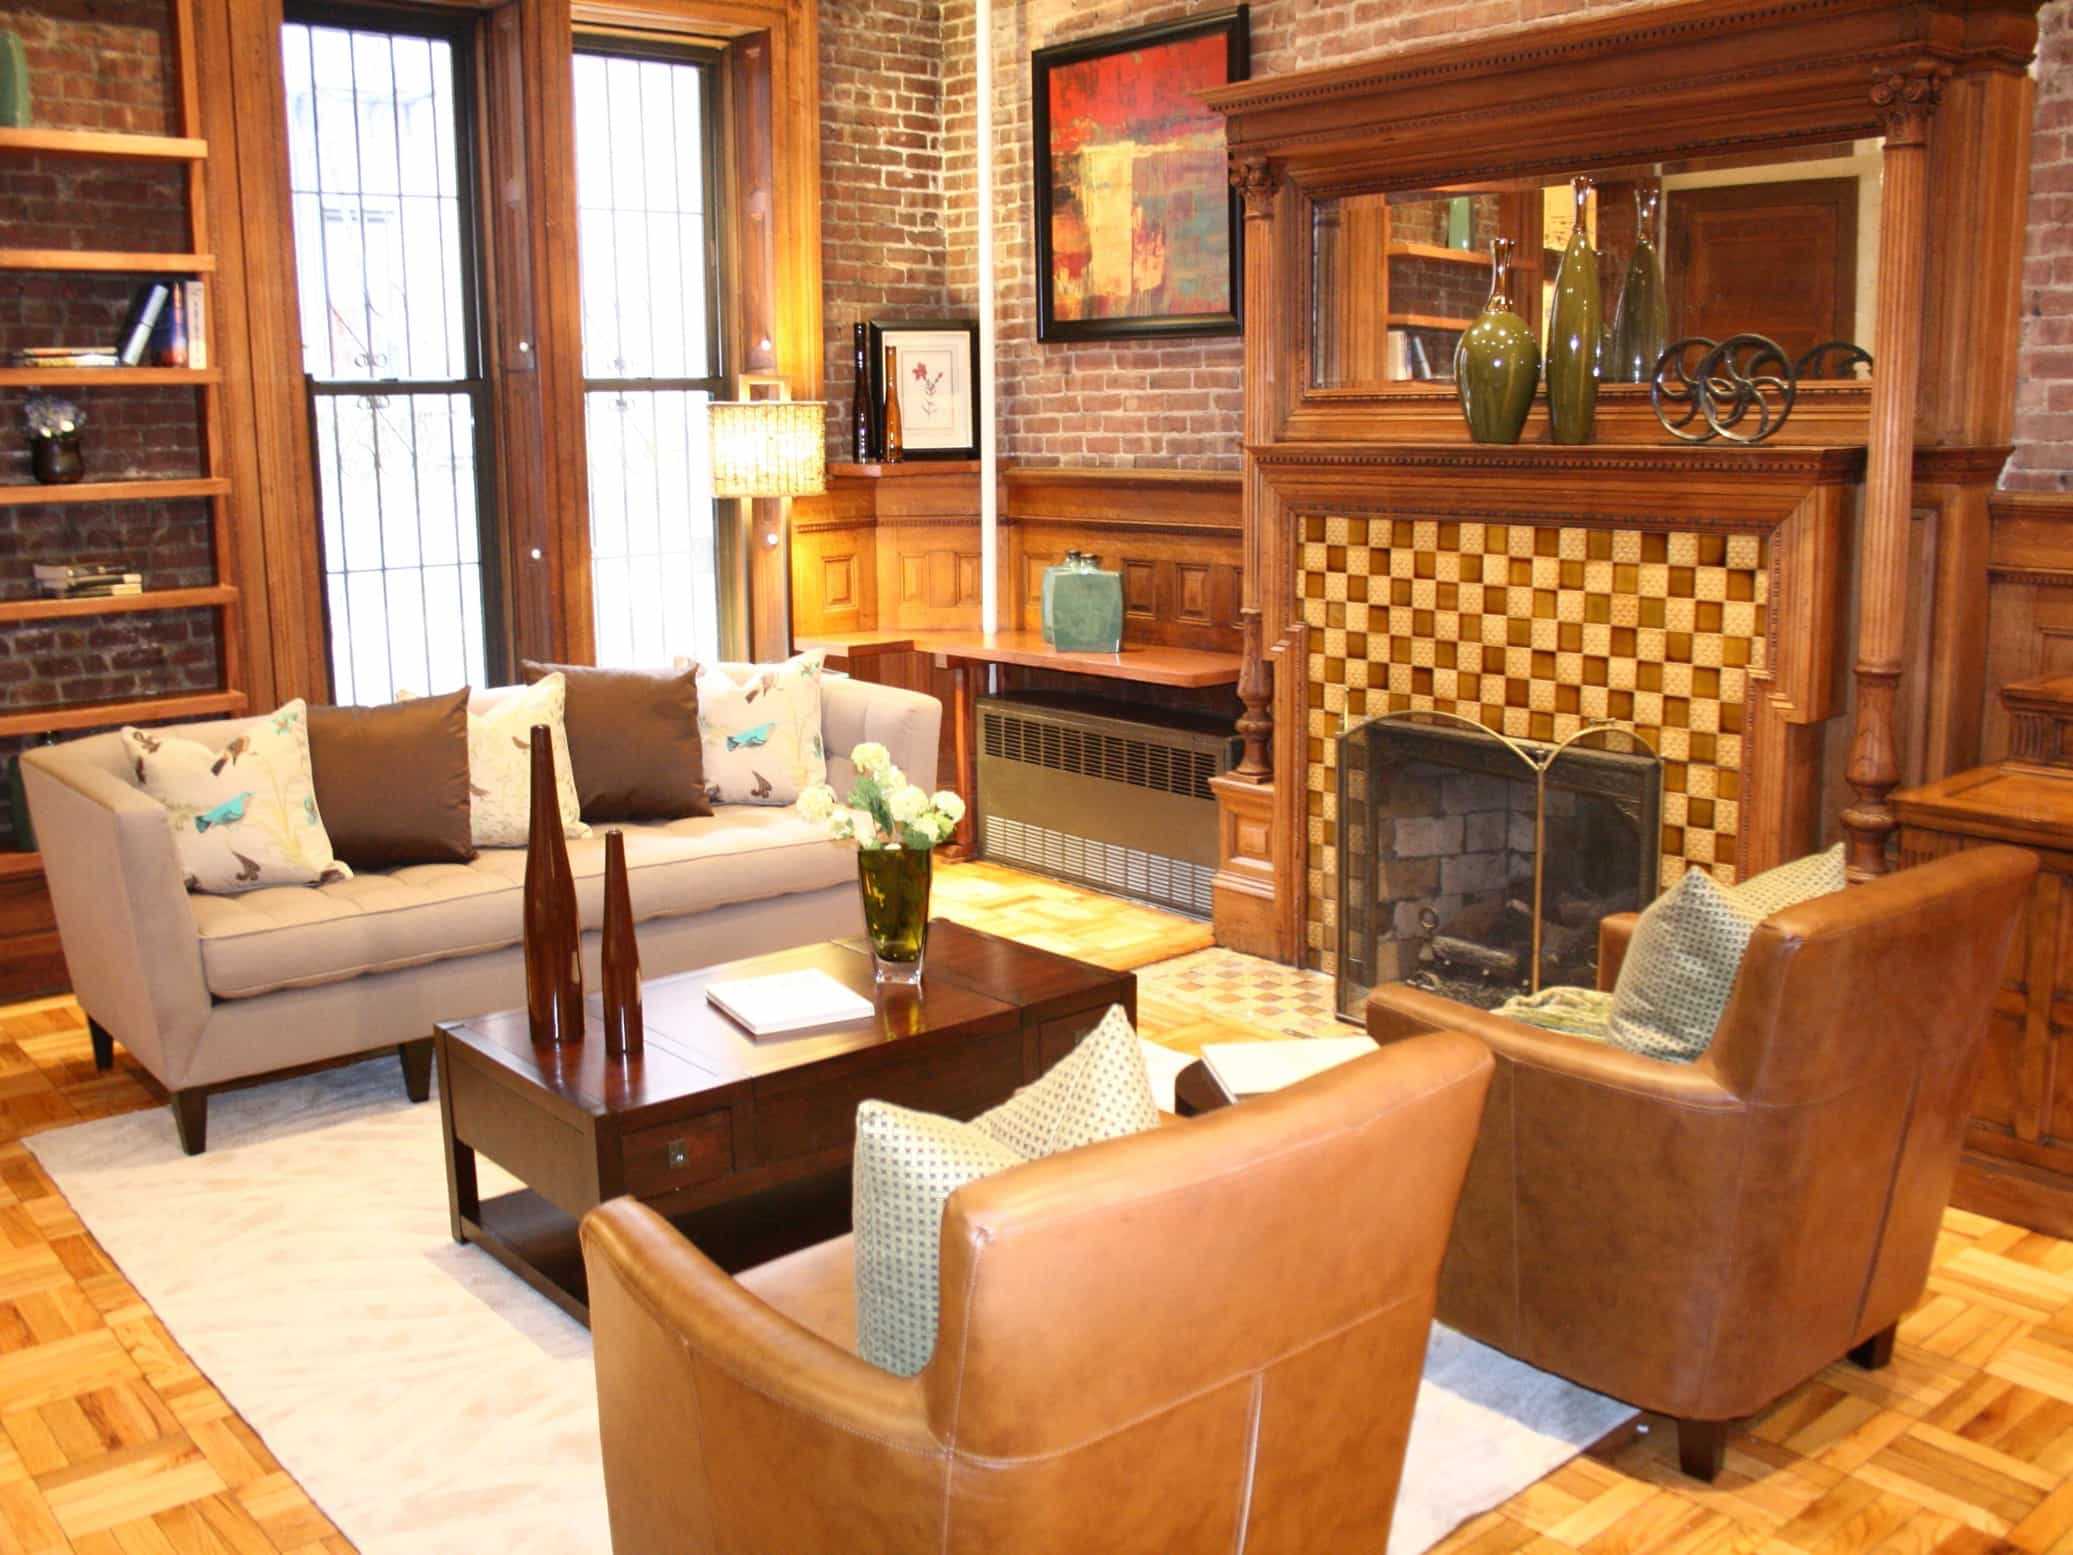 Featured Image of Country Living Room With Streamlined Furniture